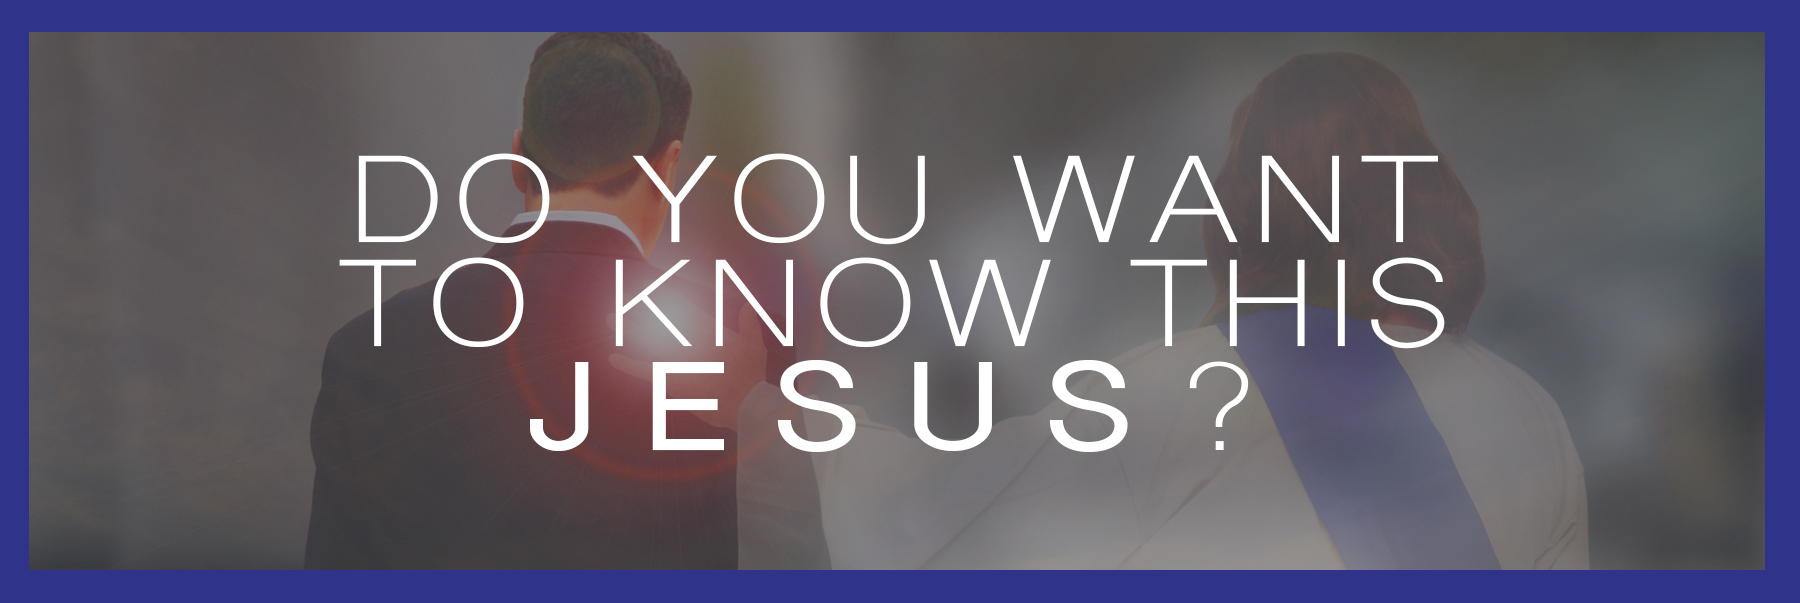 Do you want to know Jesus?